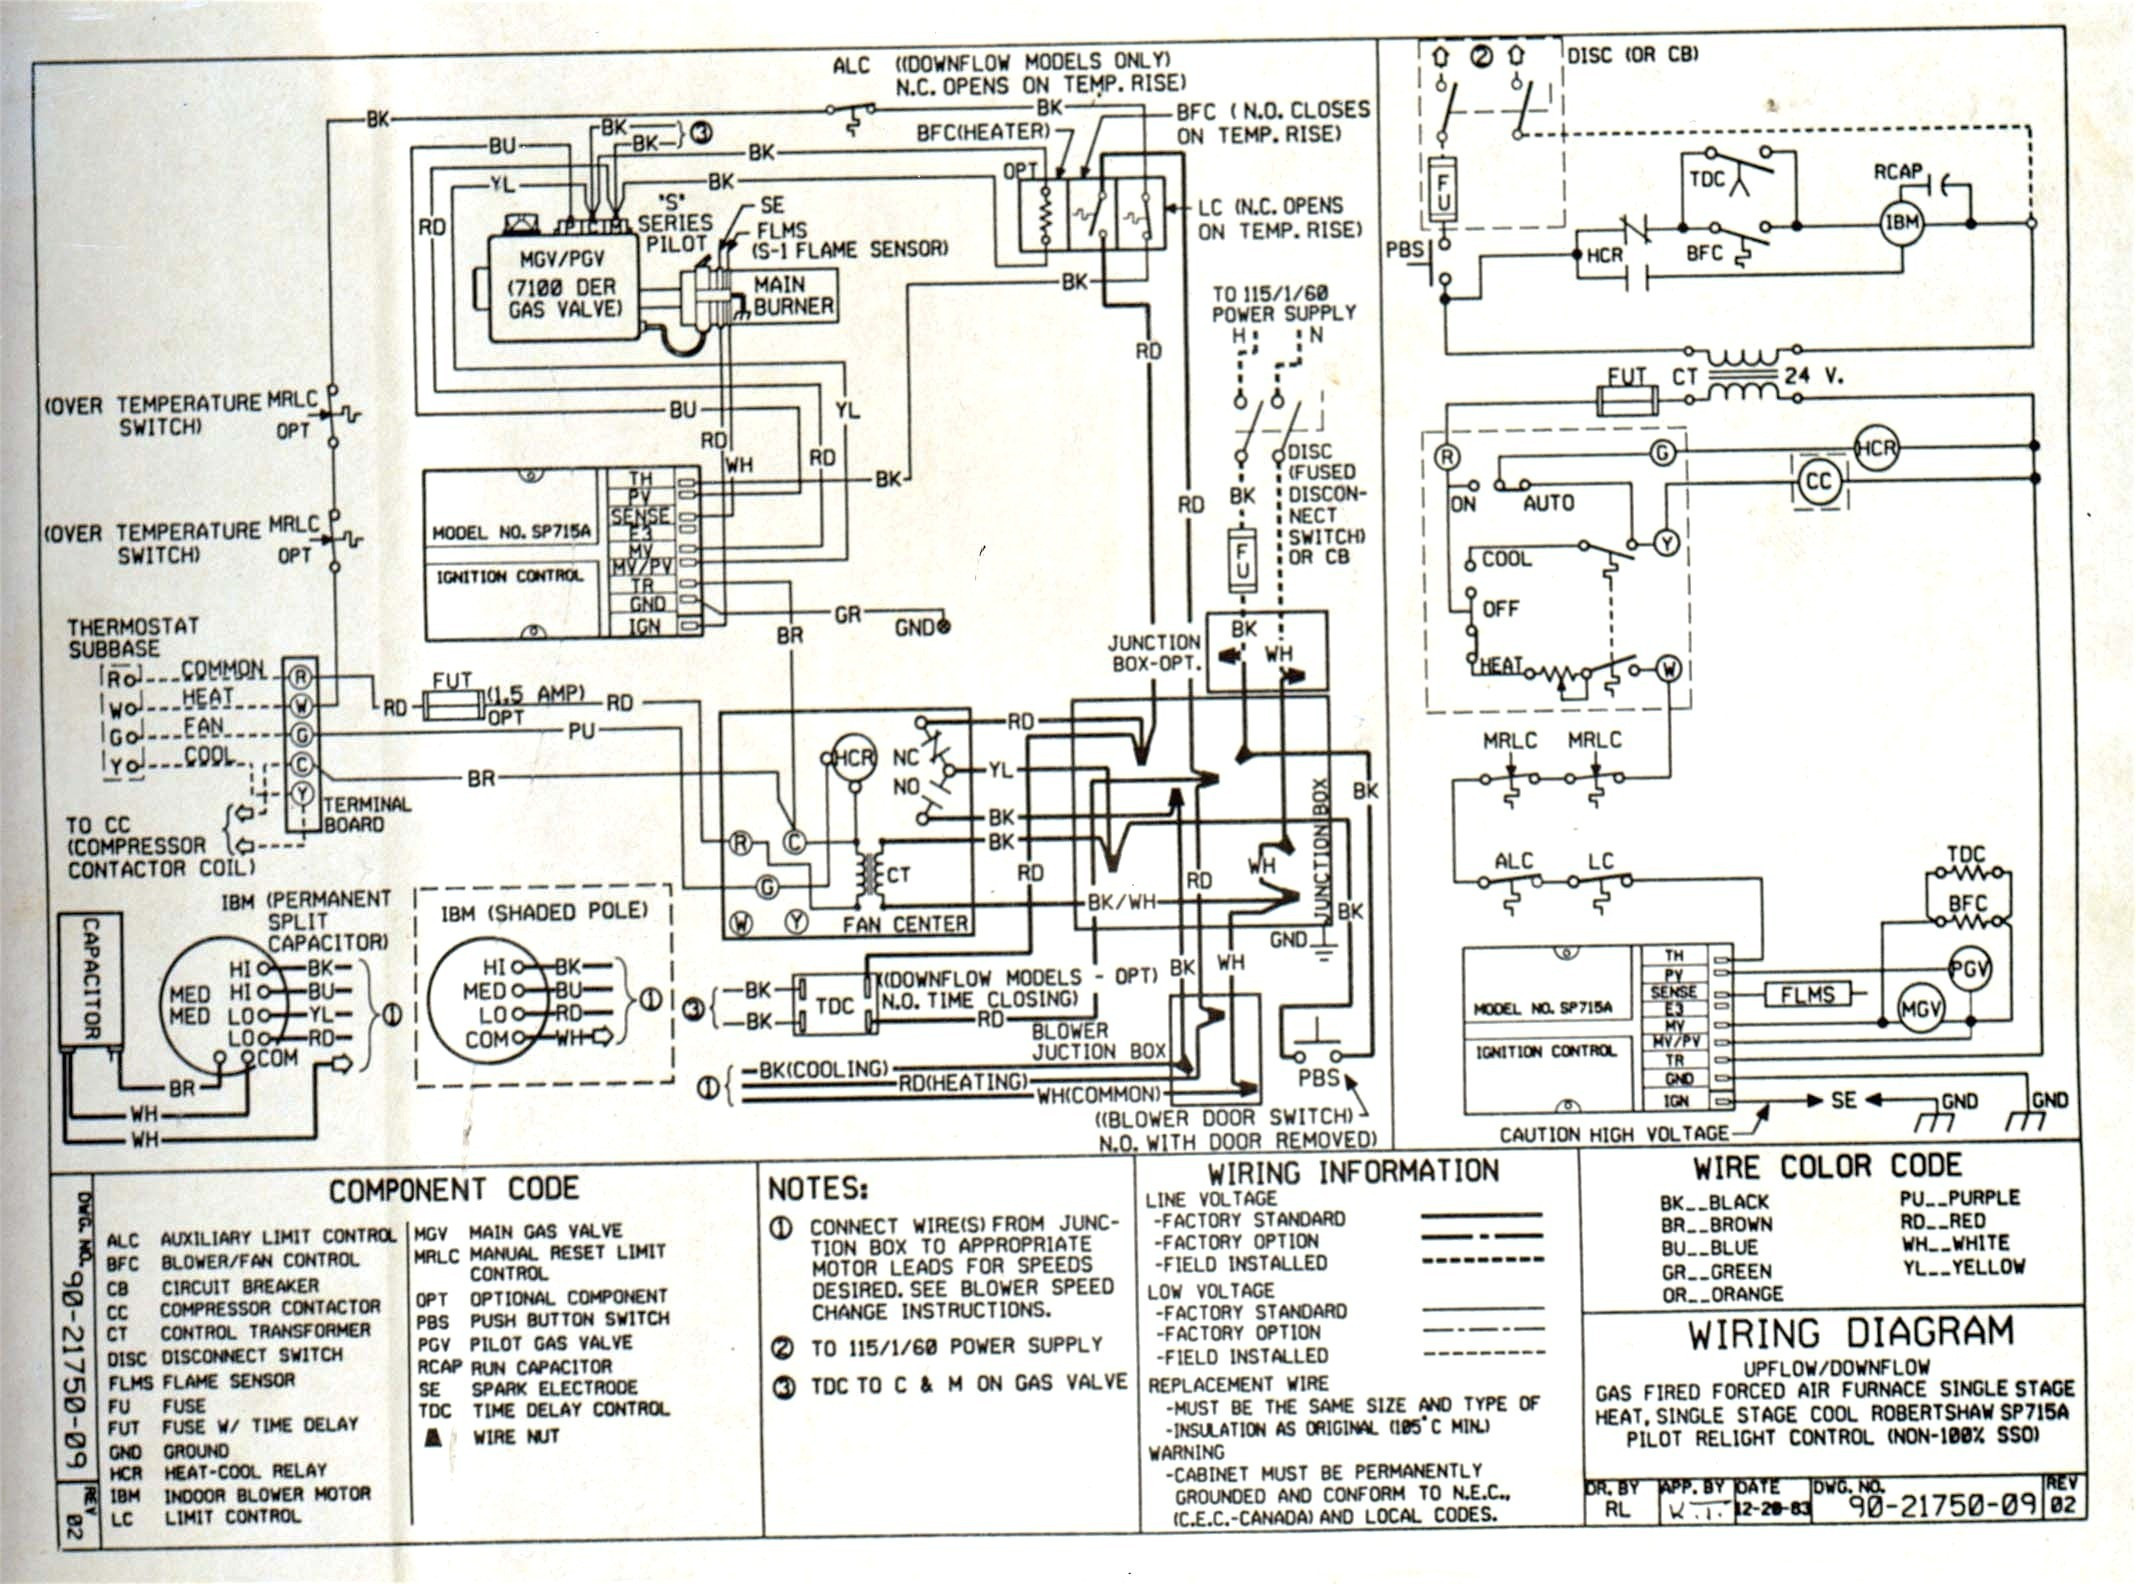 2002 Chevy Bus Wiring Diagram - Wiring Diagrams Long mind-rare -  mind-rare.ipiccolidi3p.itmind-rare.ipiccolidi3p.it